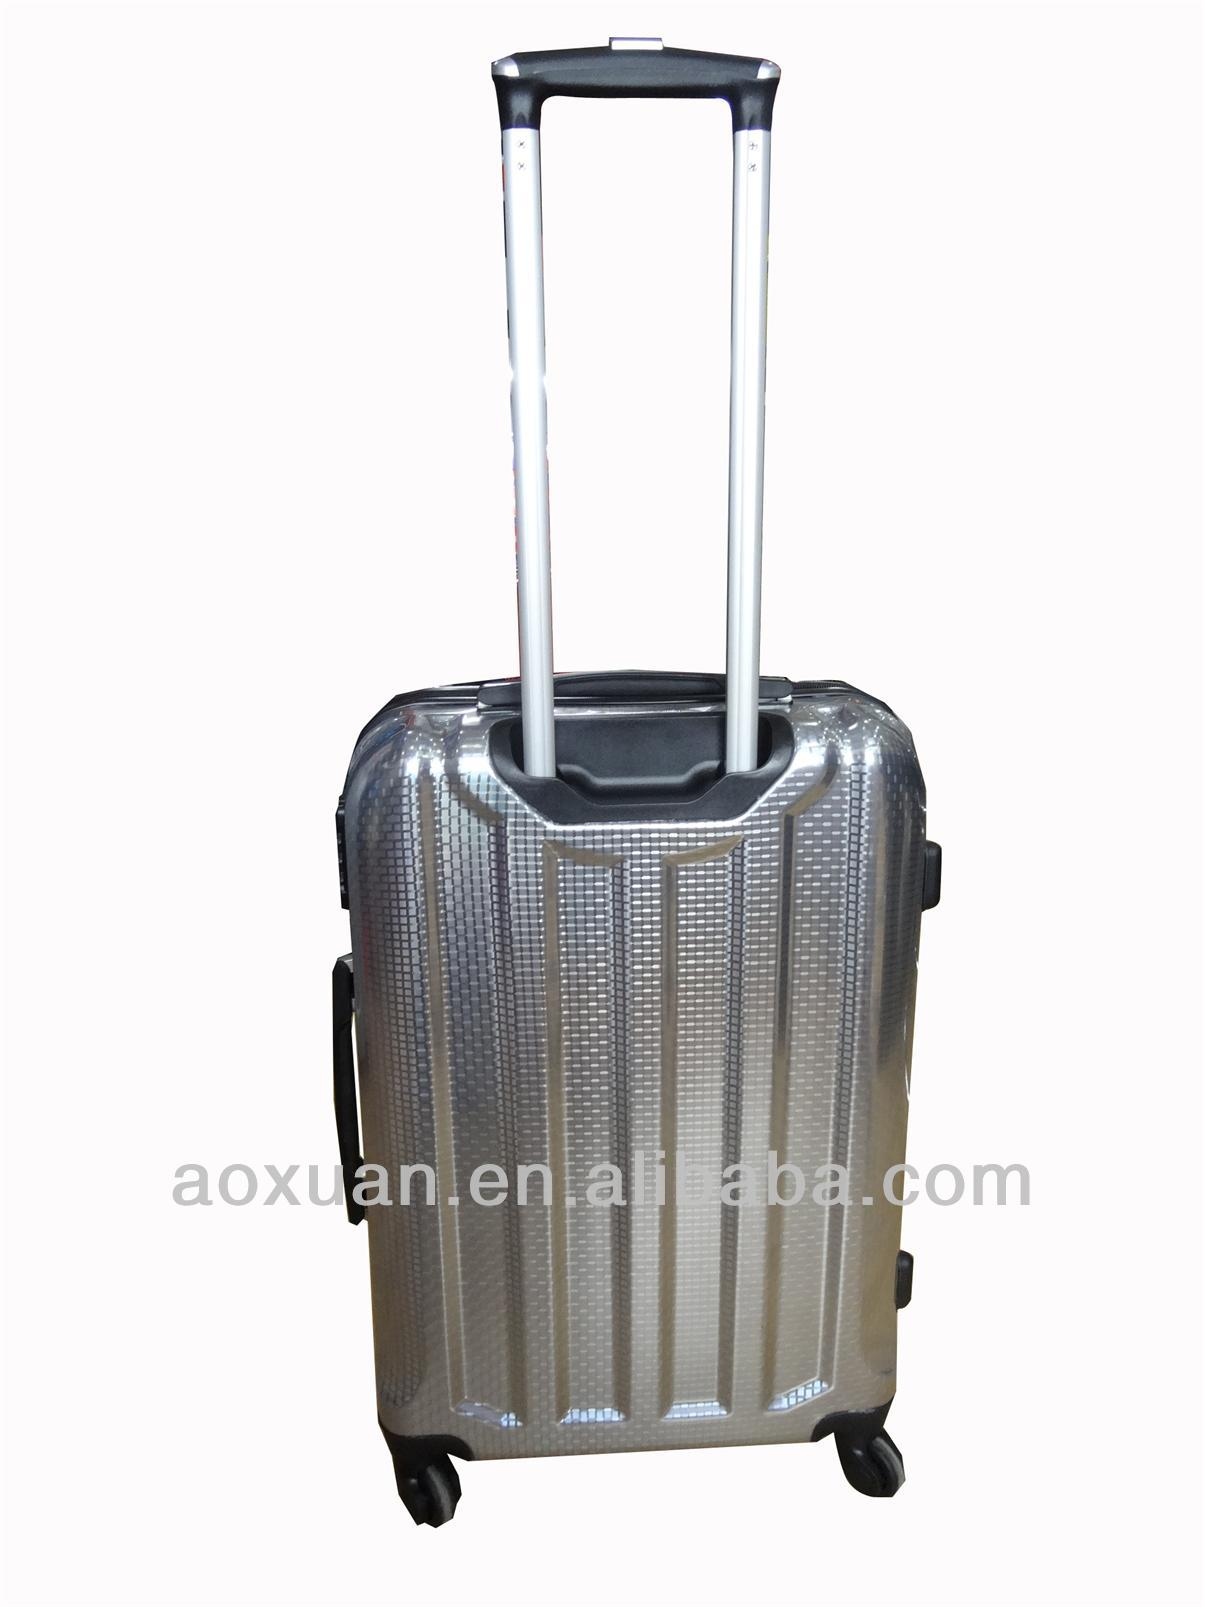 abs pc film trolley luggage case or ABS+PC aluminum film travel bag